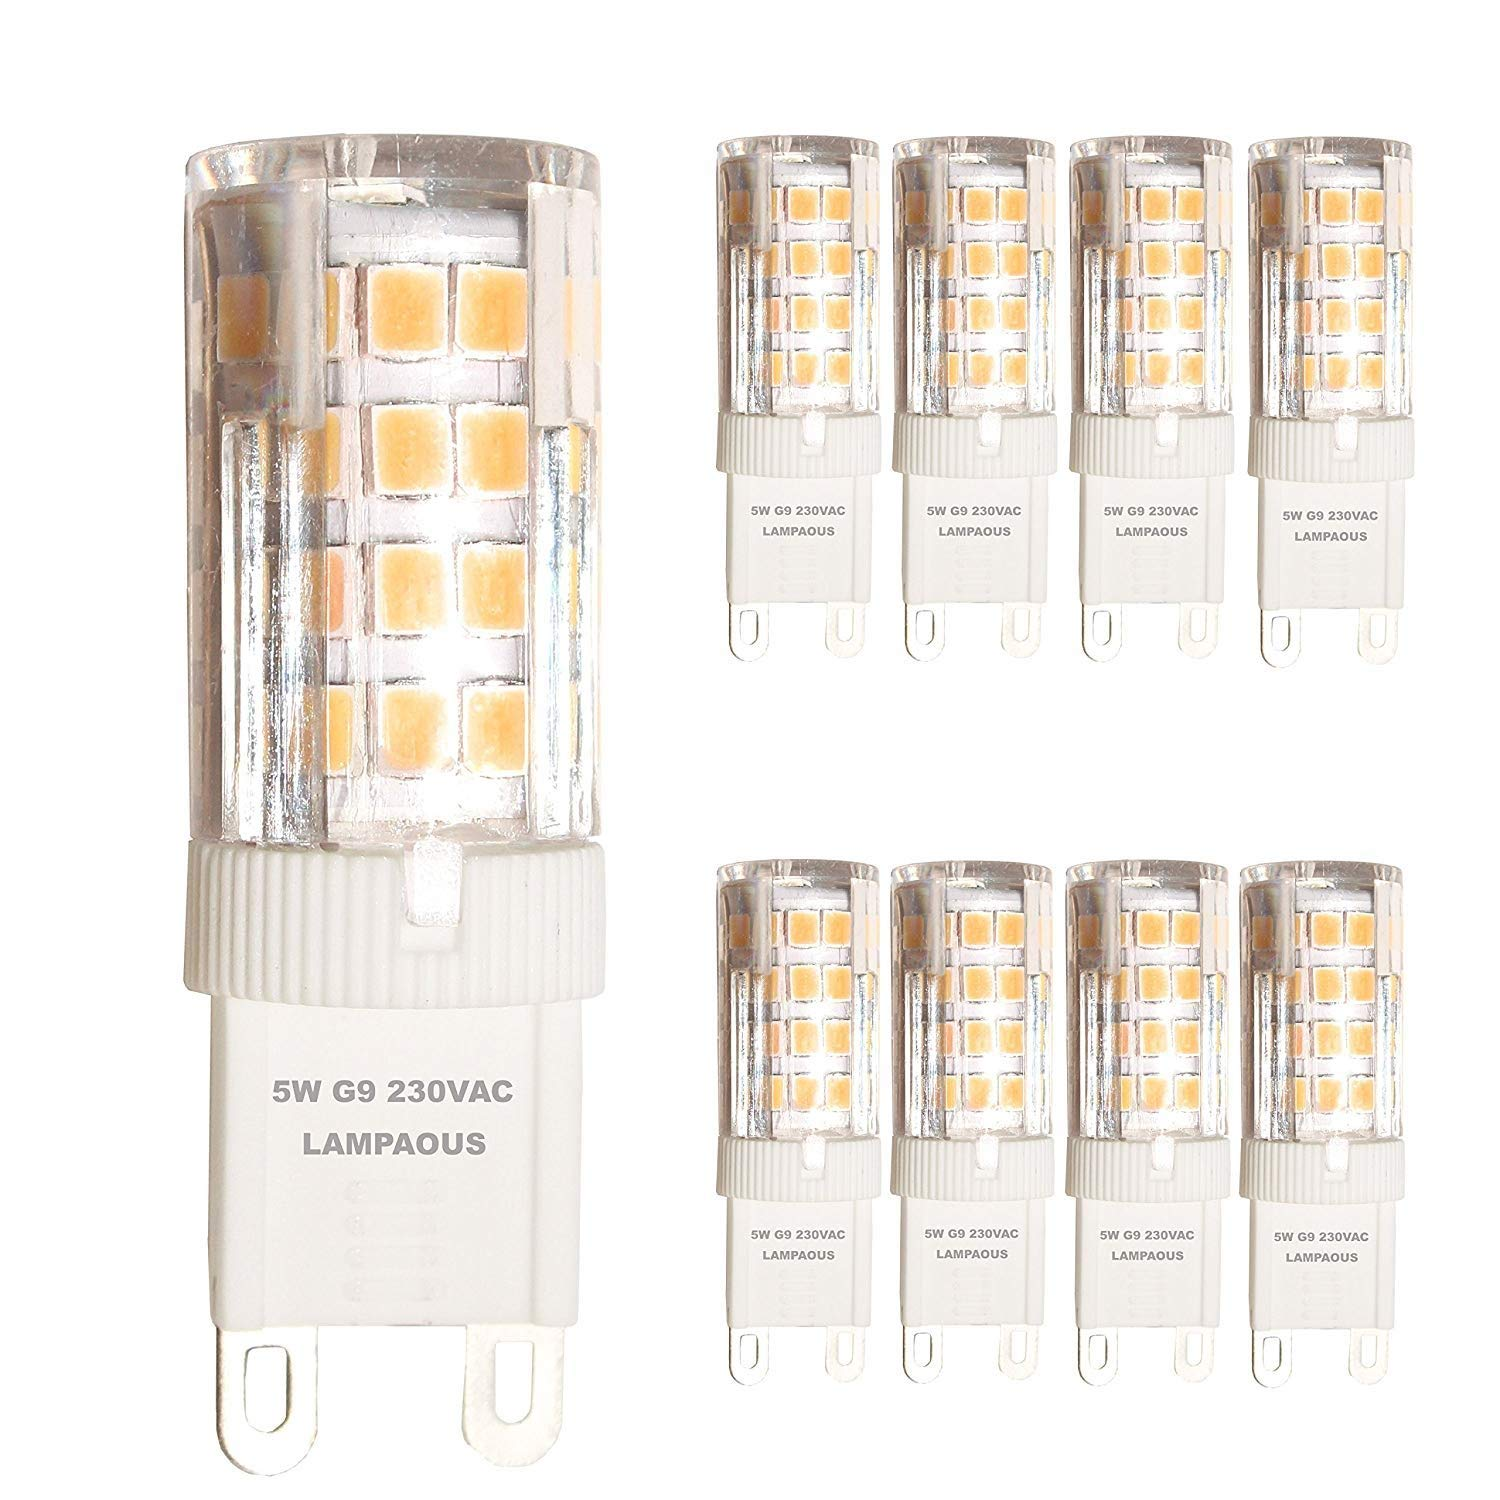 LAMPAOUS G9 LED Bulb Daylight 5W Light Bulbs,50W Halogen Equivalent,3000K Warm White,400lm,120V,G9 Base Lights for Crystal Chandelier Home Indoor Lighting Or Ceiling Light Fixture Pendant Lamp,8 Pack